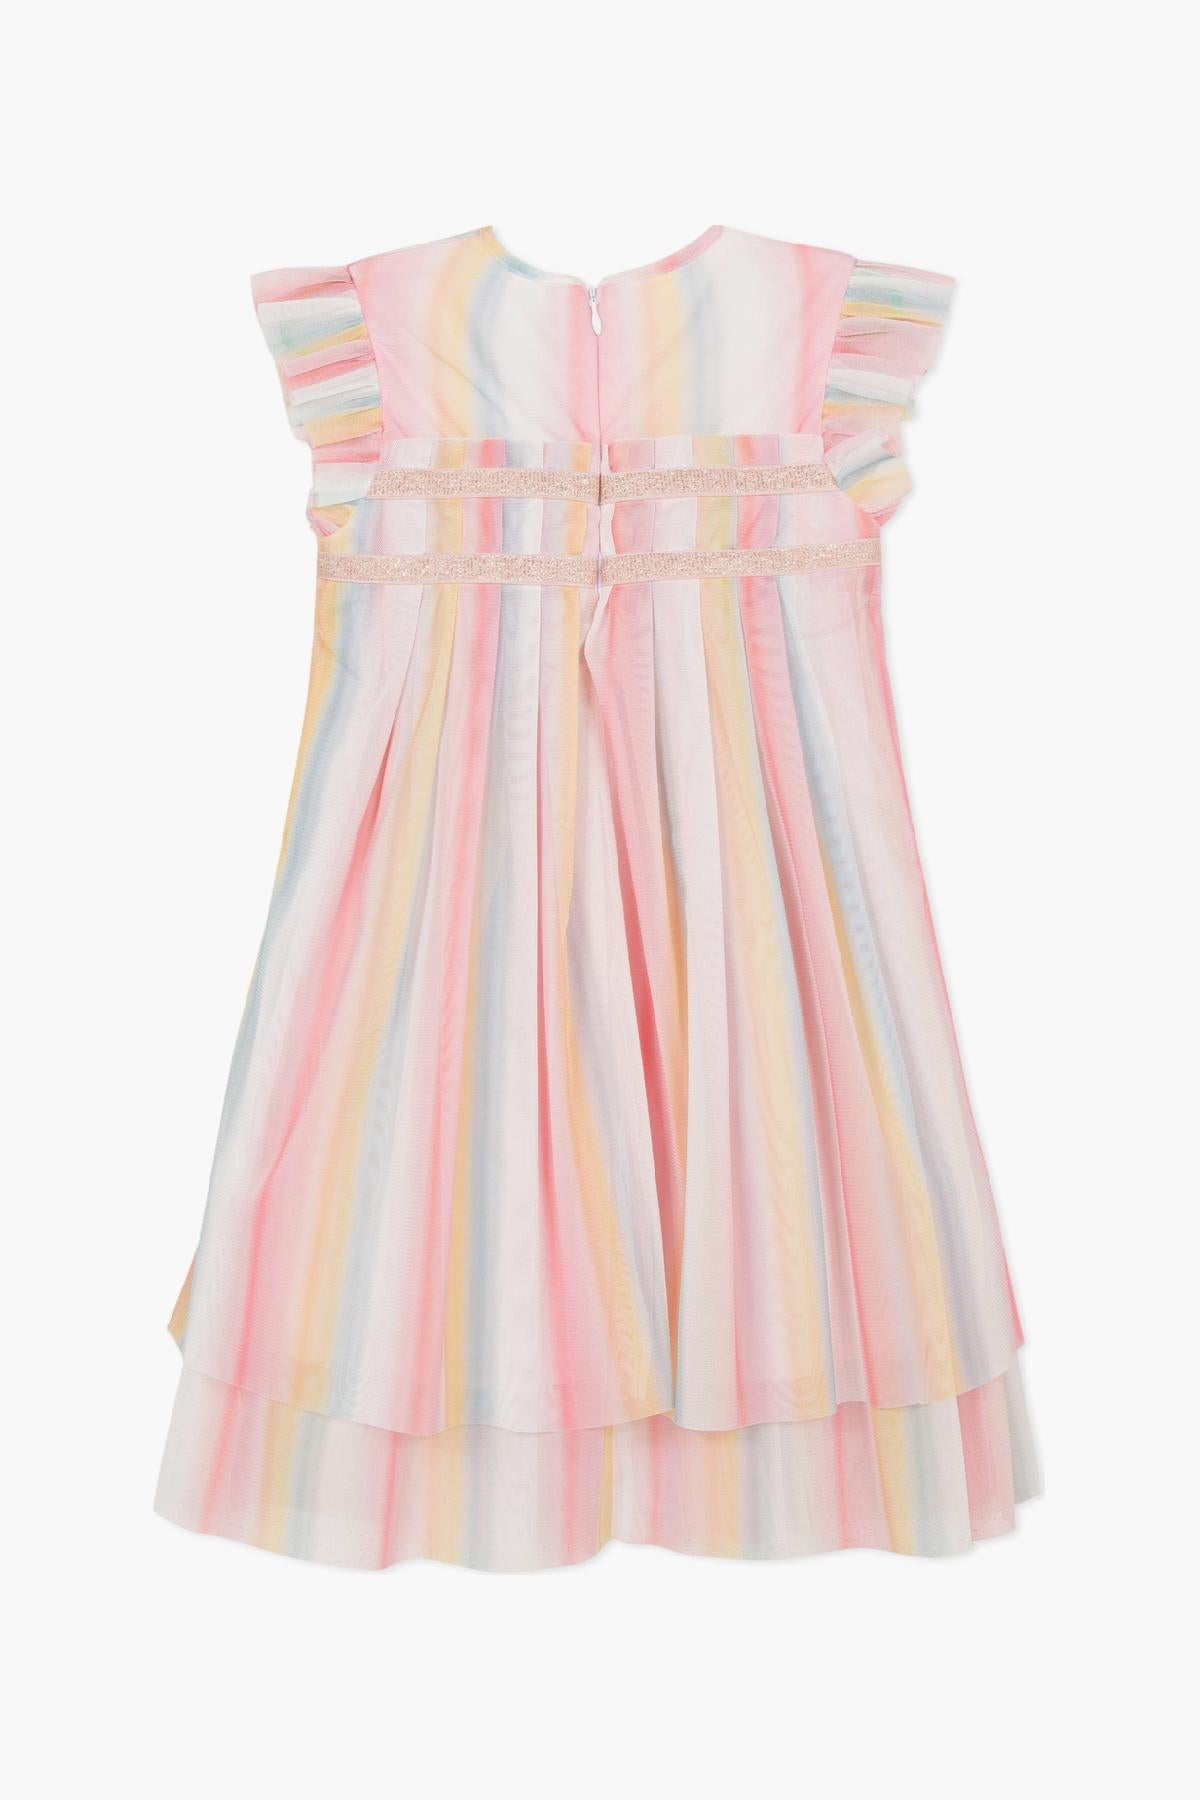 Lili Gaufrette Sherbet Pleated Girls Dress